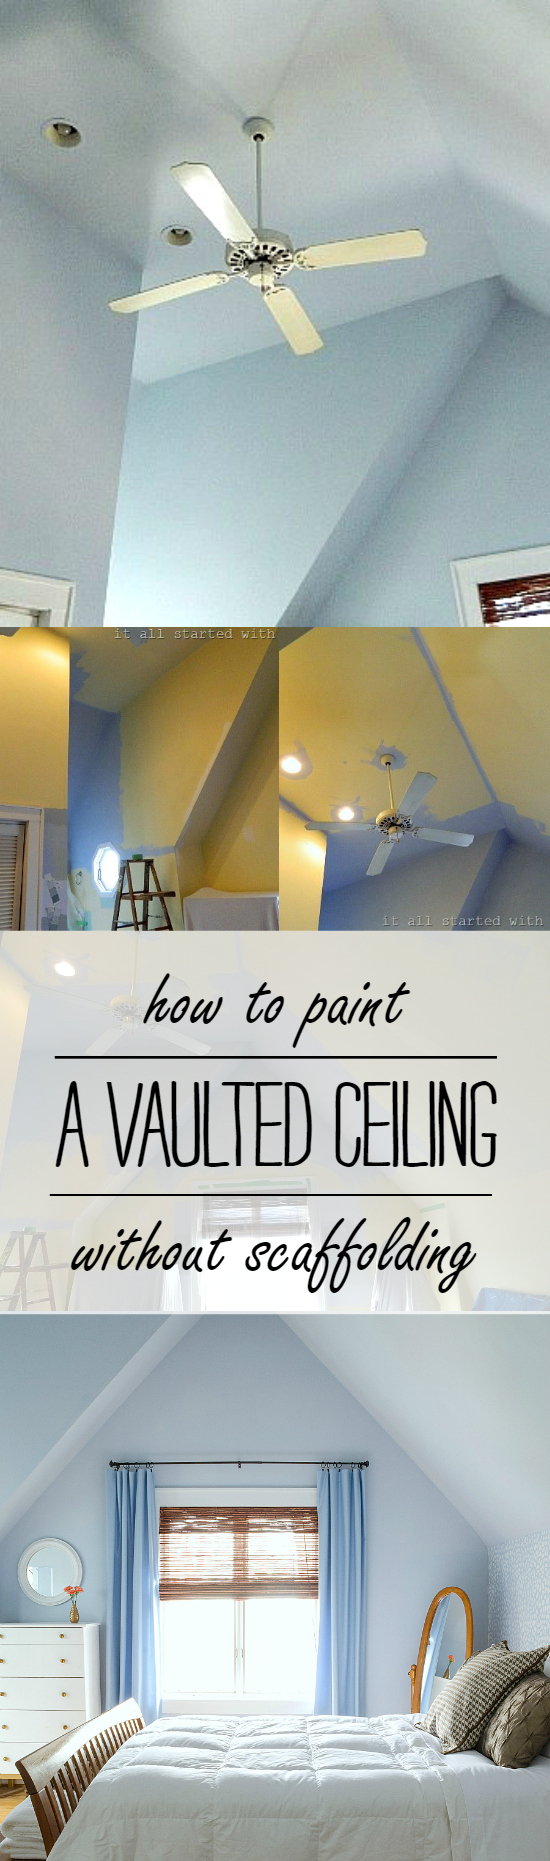 How To Paint A Vaulted Ceiling Without Scaffolding or Platforms